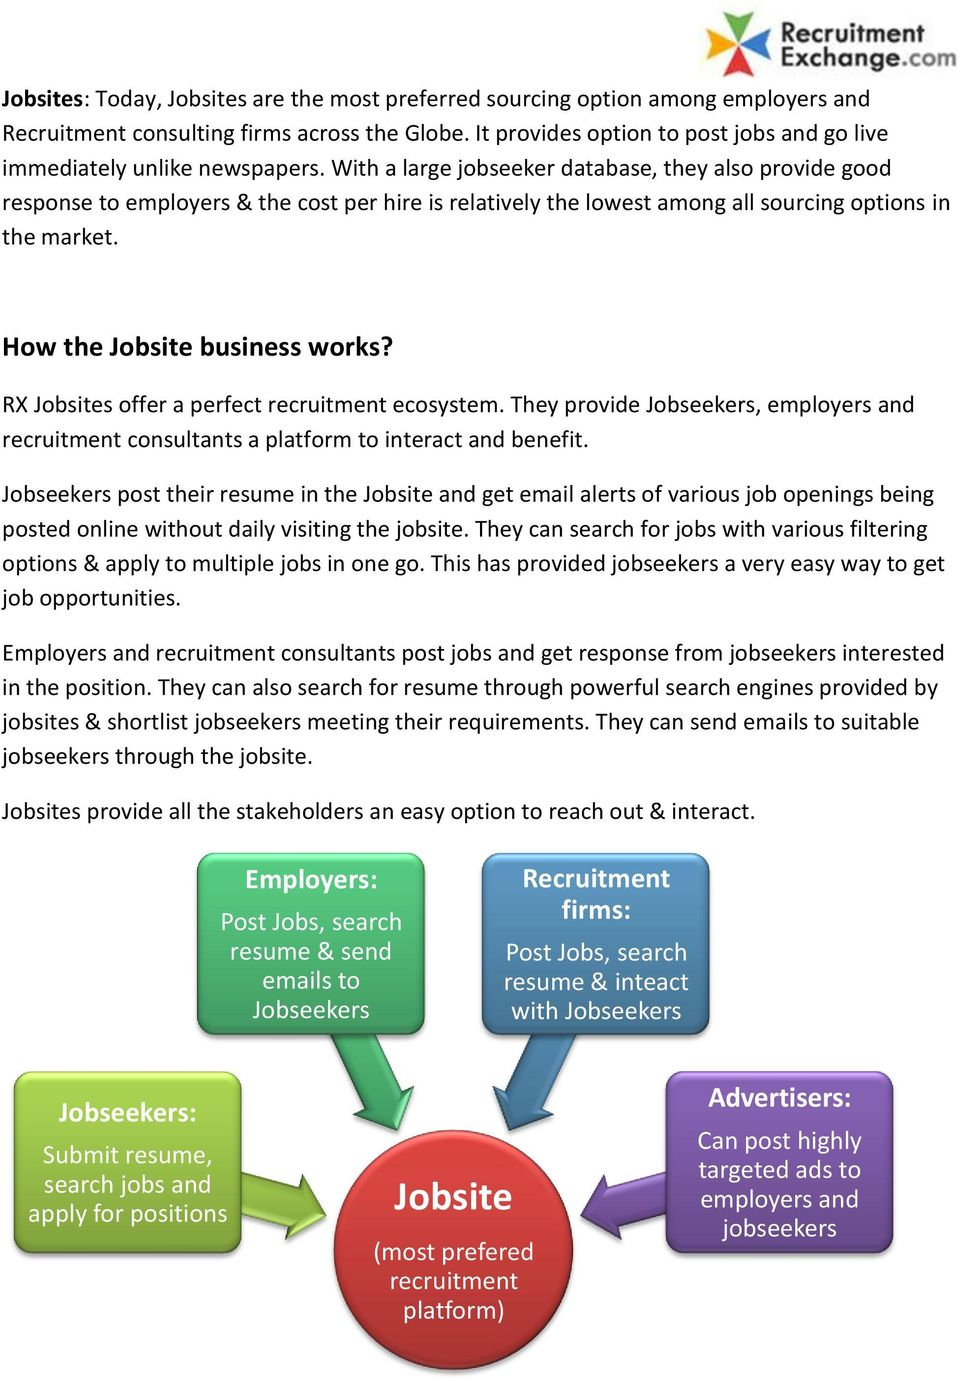 With a large jobseeker database, they also provide good response to employers & the cost per hire is relatively the lowest among all sourcing options in the market. How the Jobsite business works?